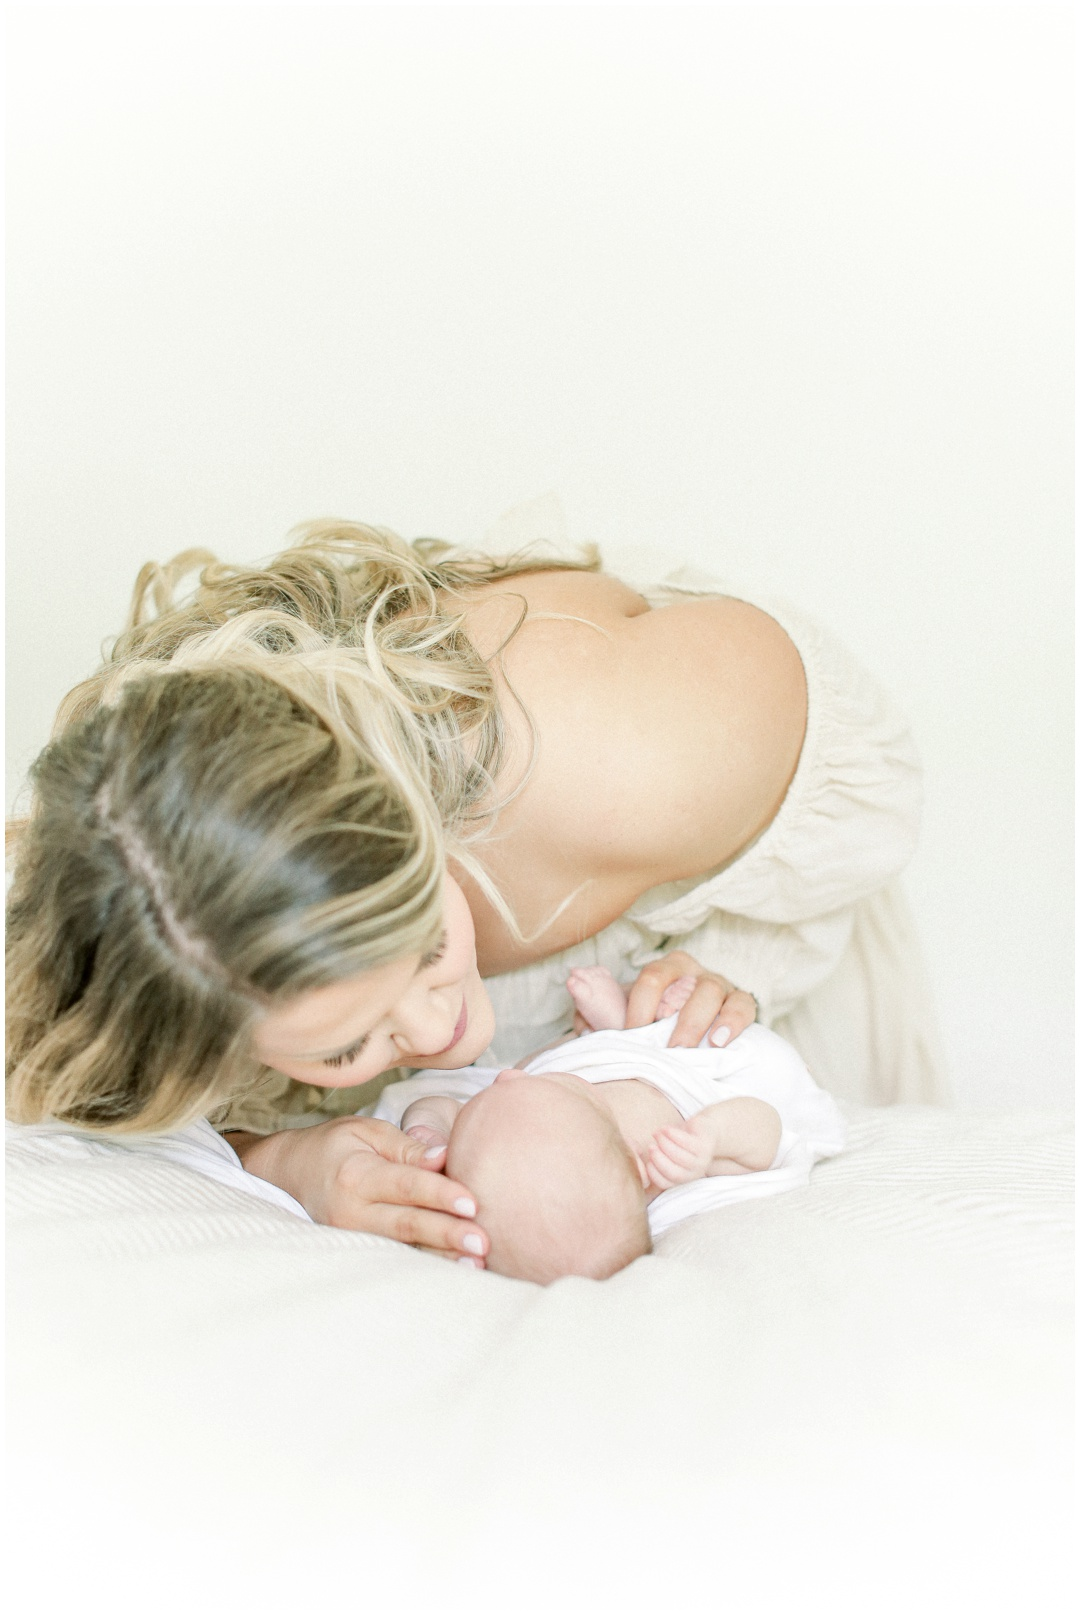 Newport_Beach_Newborn_Light_Airy_Natural_Photographer_Newport_Beach_In-Home_Photographer_Orange_County_Family_Photographer_Cori_Kleckner_Photography_Huntington_Beach_Photographer_Family_OC_Newborn_Meghan_Sullivan_Newborn_Family_Greer_Sullivan_3244.jpg